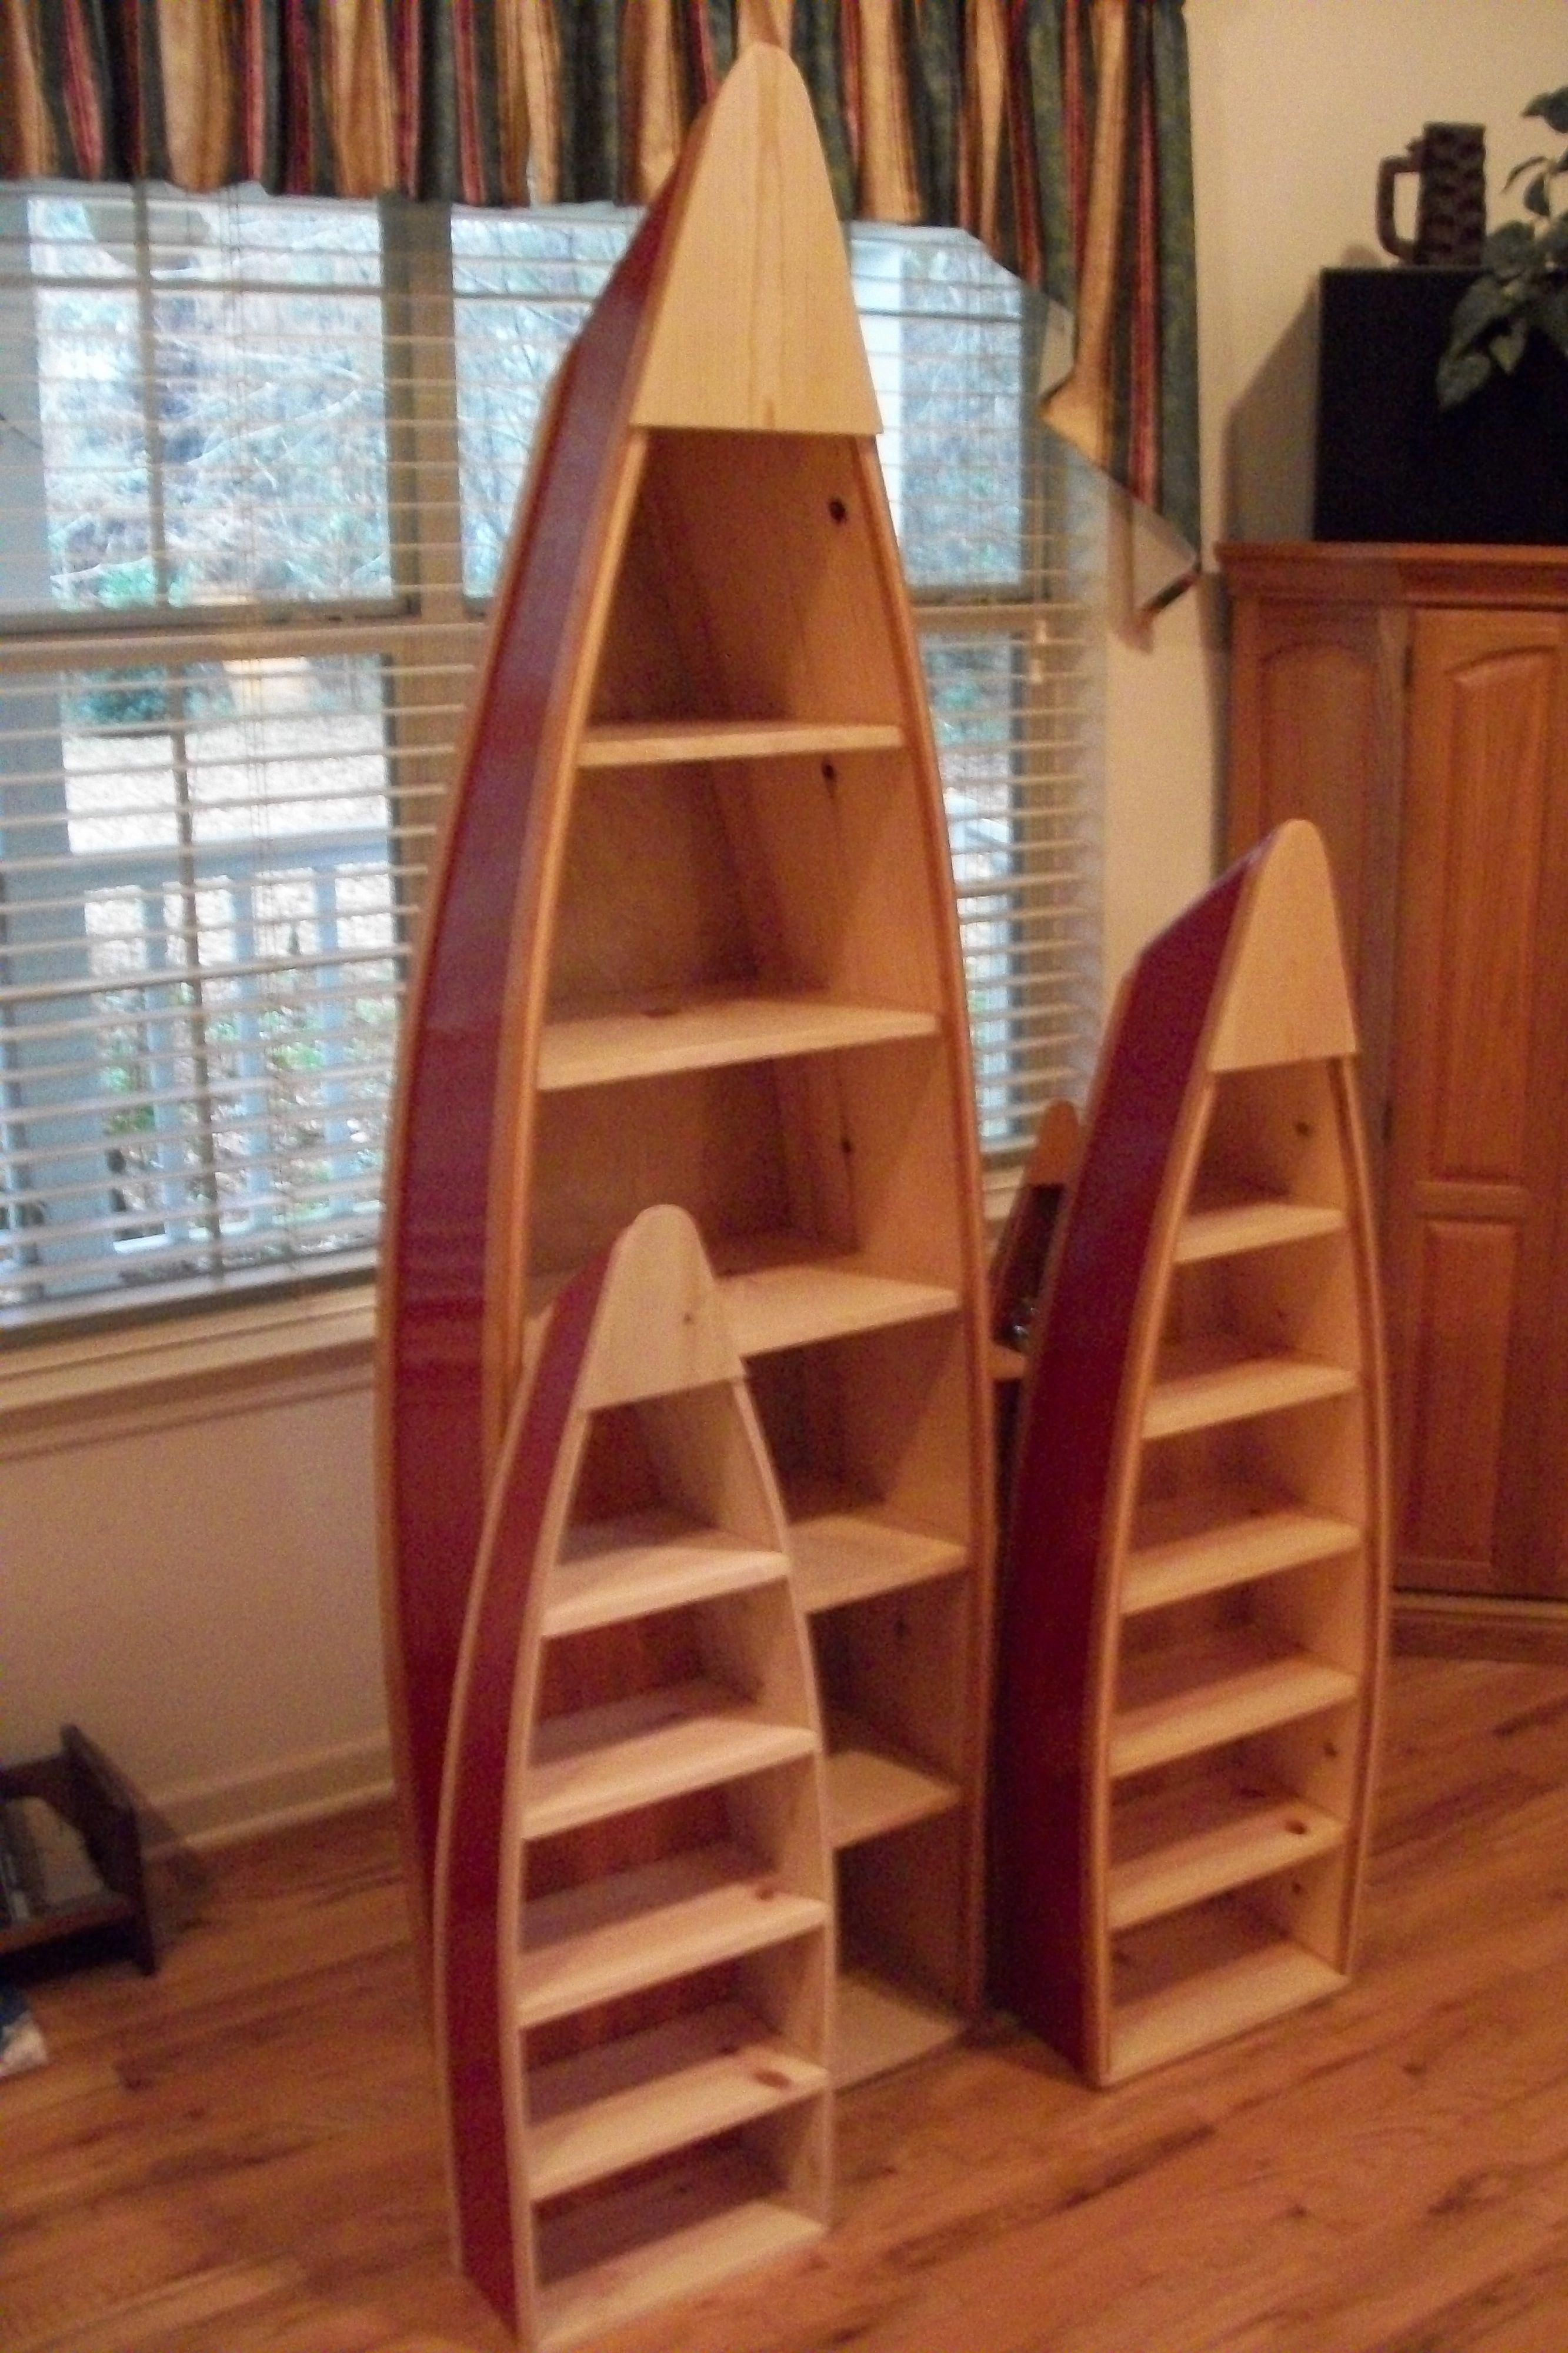 Boat Shelves Red Matching Set Of Canoe Shelves Home Decor Diyfurnitureplansguestbedrooms Home Decor Home Diy Cabin Decor